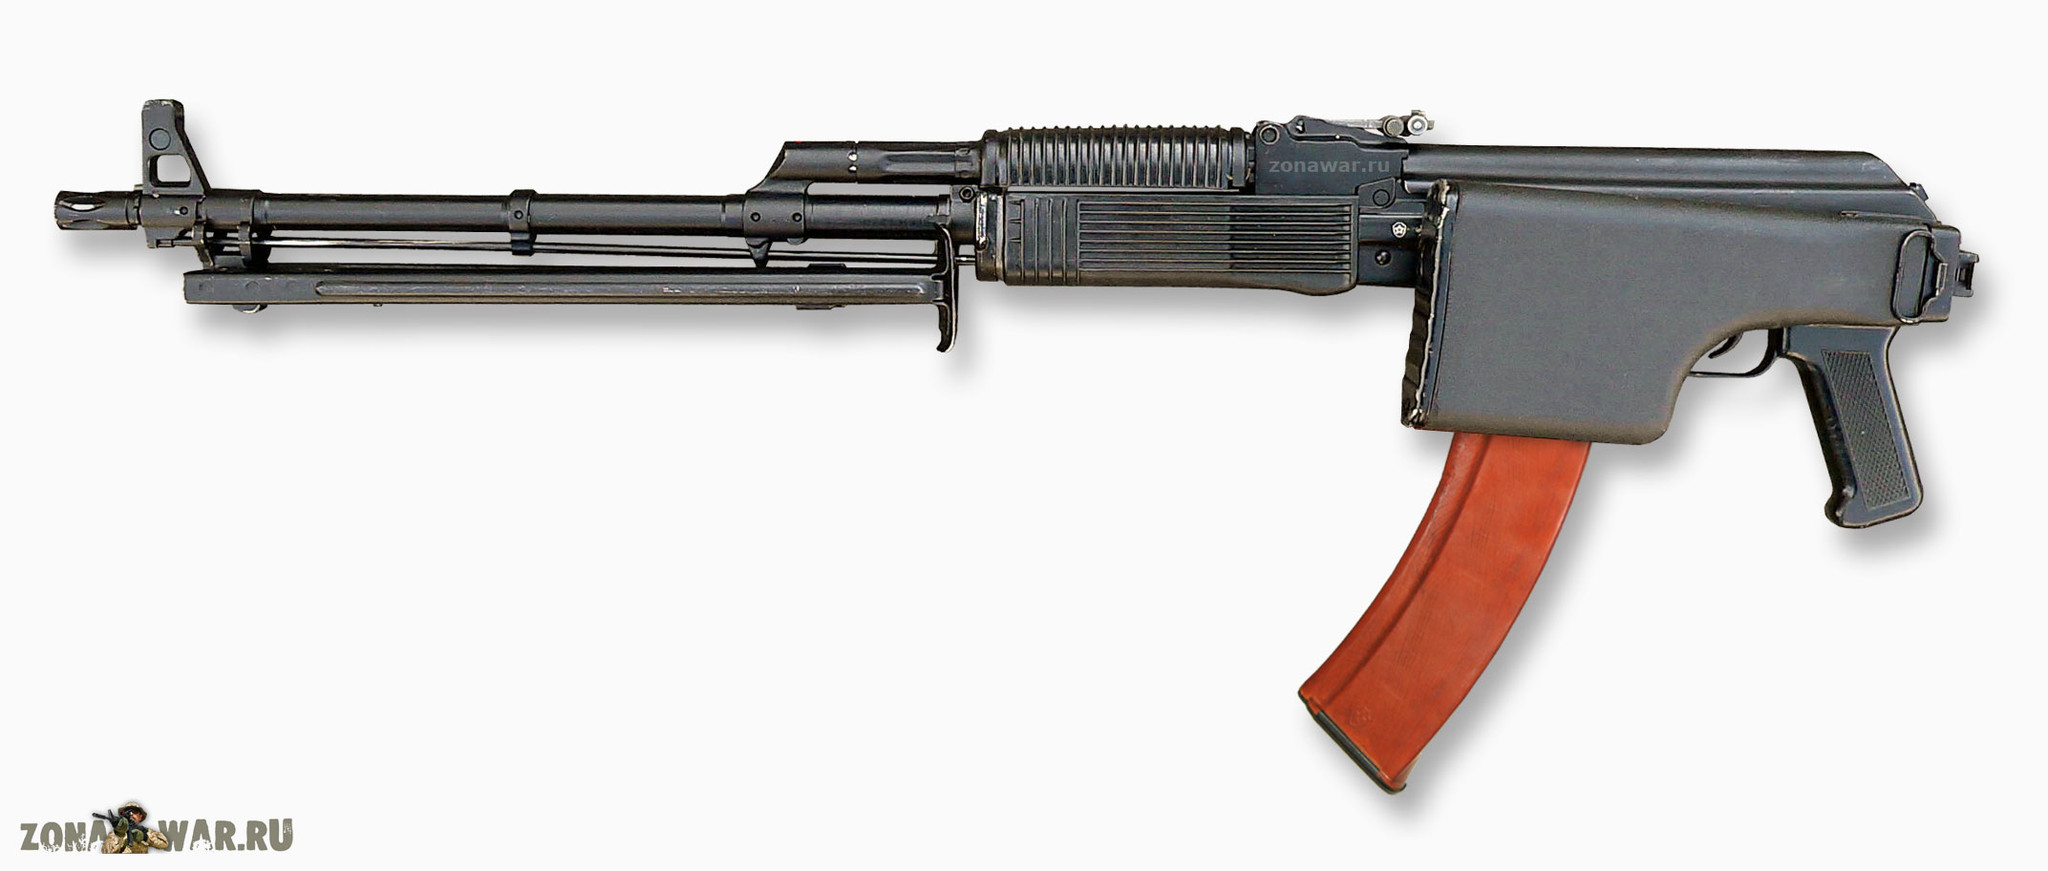 Kalashnikov machine gun: specifications and photos. Russian firearms 26